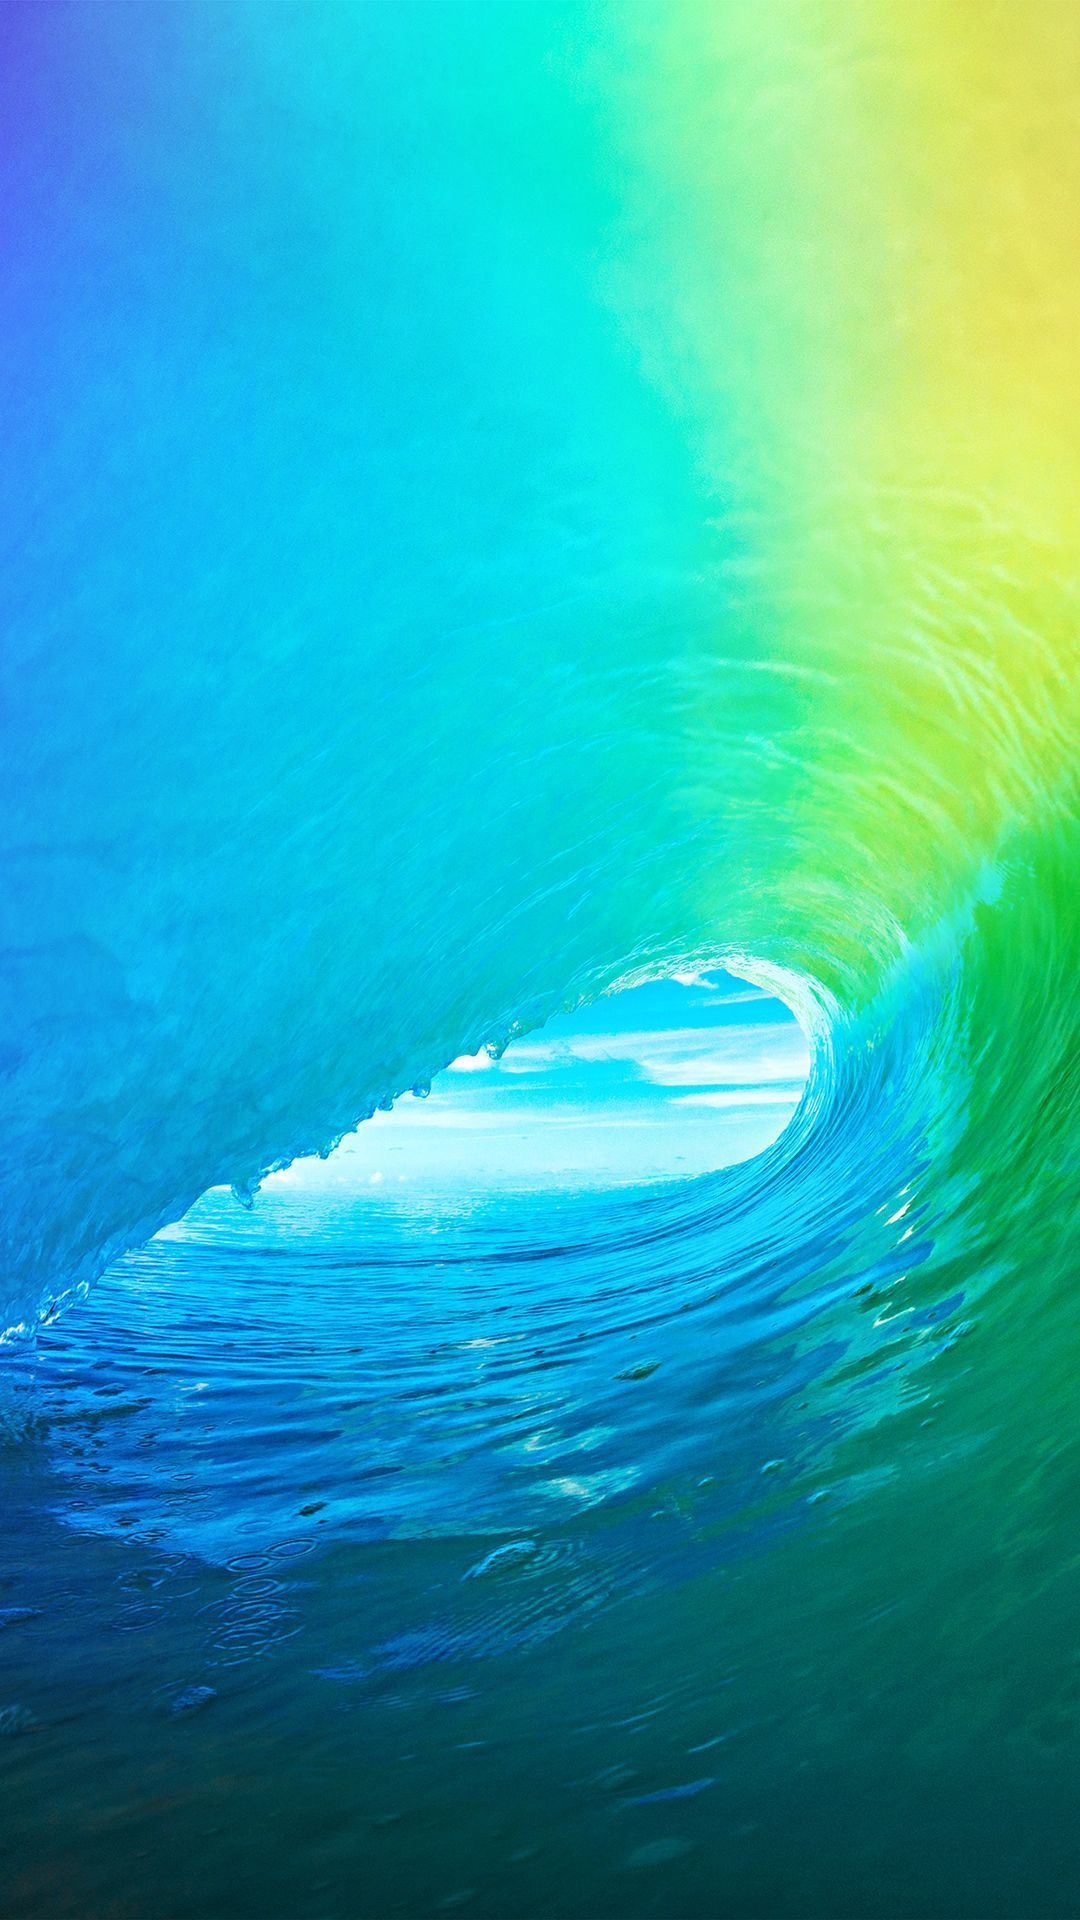 Wave Iphone Wallpapers Top Free Wave Iphone Backgrounds Wallpaperaccess